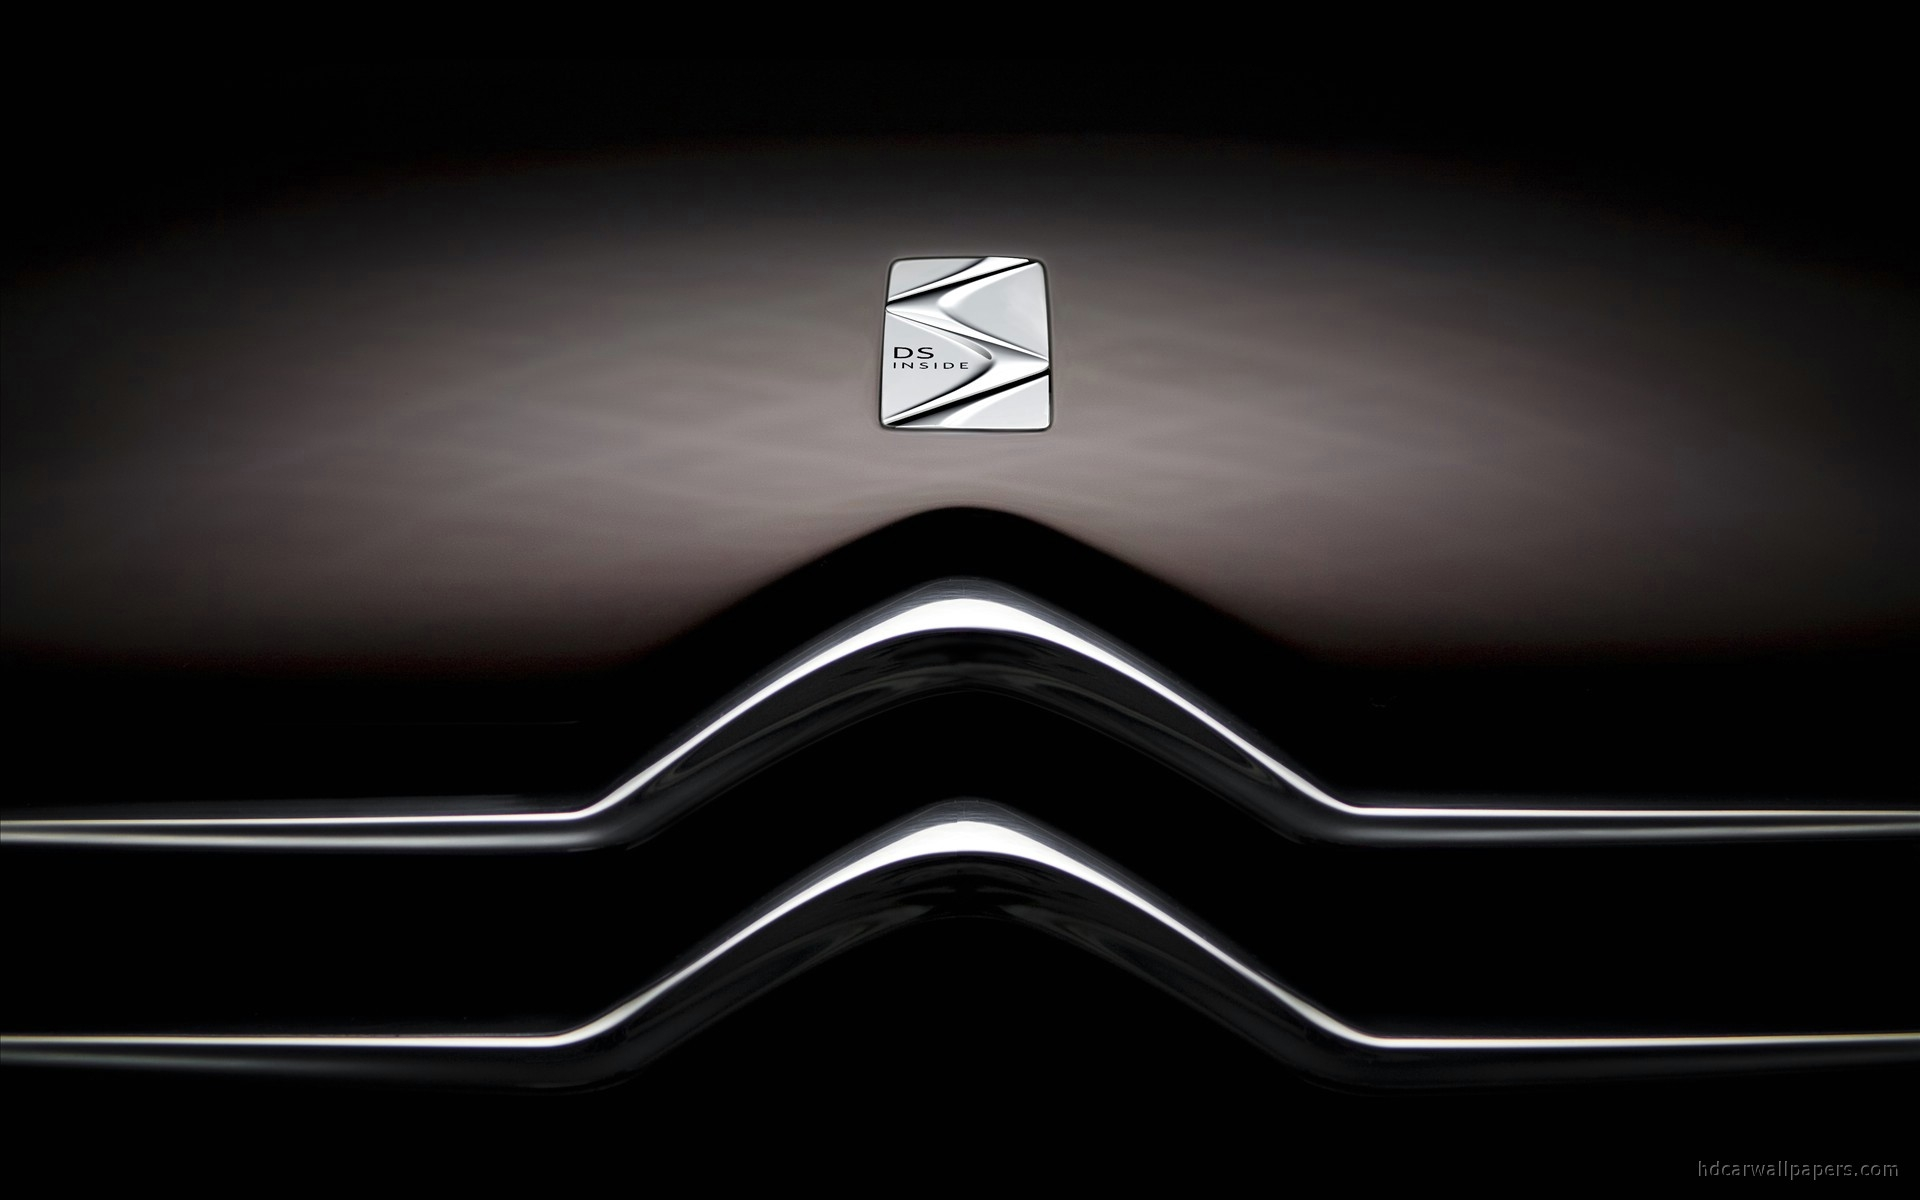 citroen-ds-inside-logo-Citroen-Ds-Inside-Logo-Pictures-Car-Hd-intended-for-wallpaper-wpc5803495